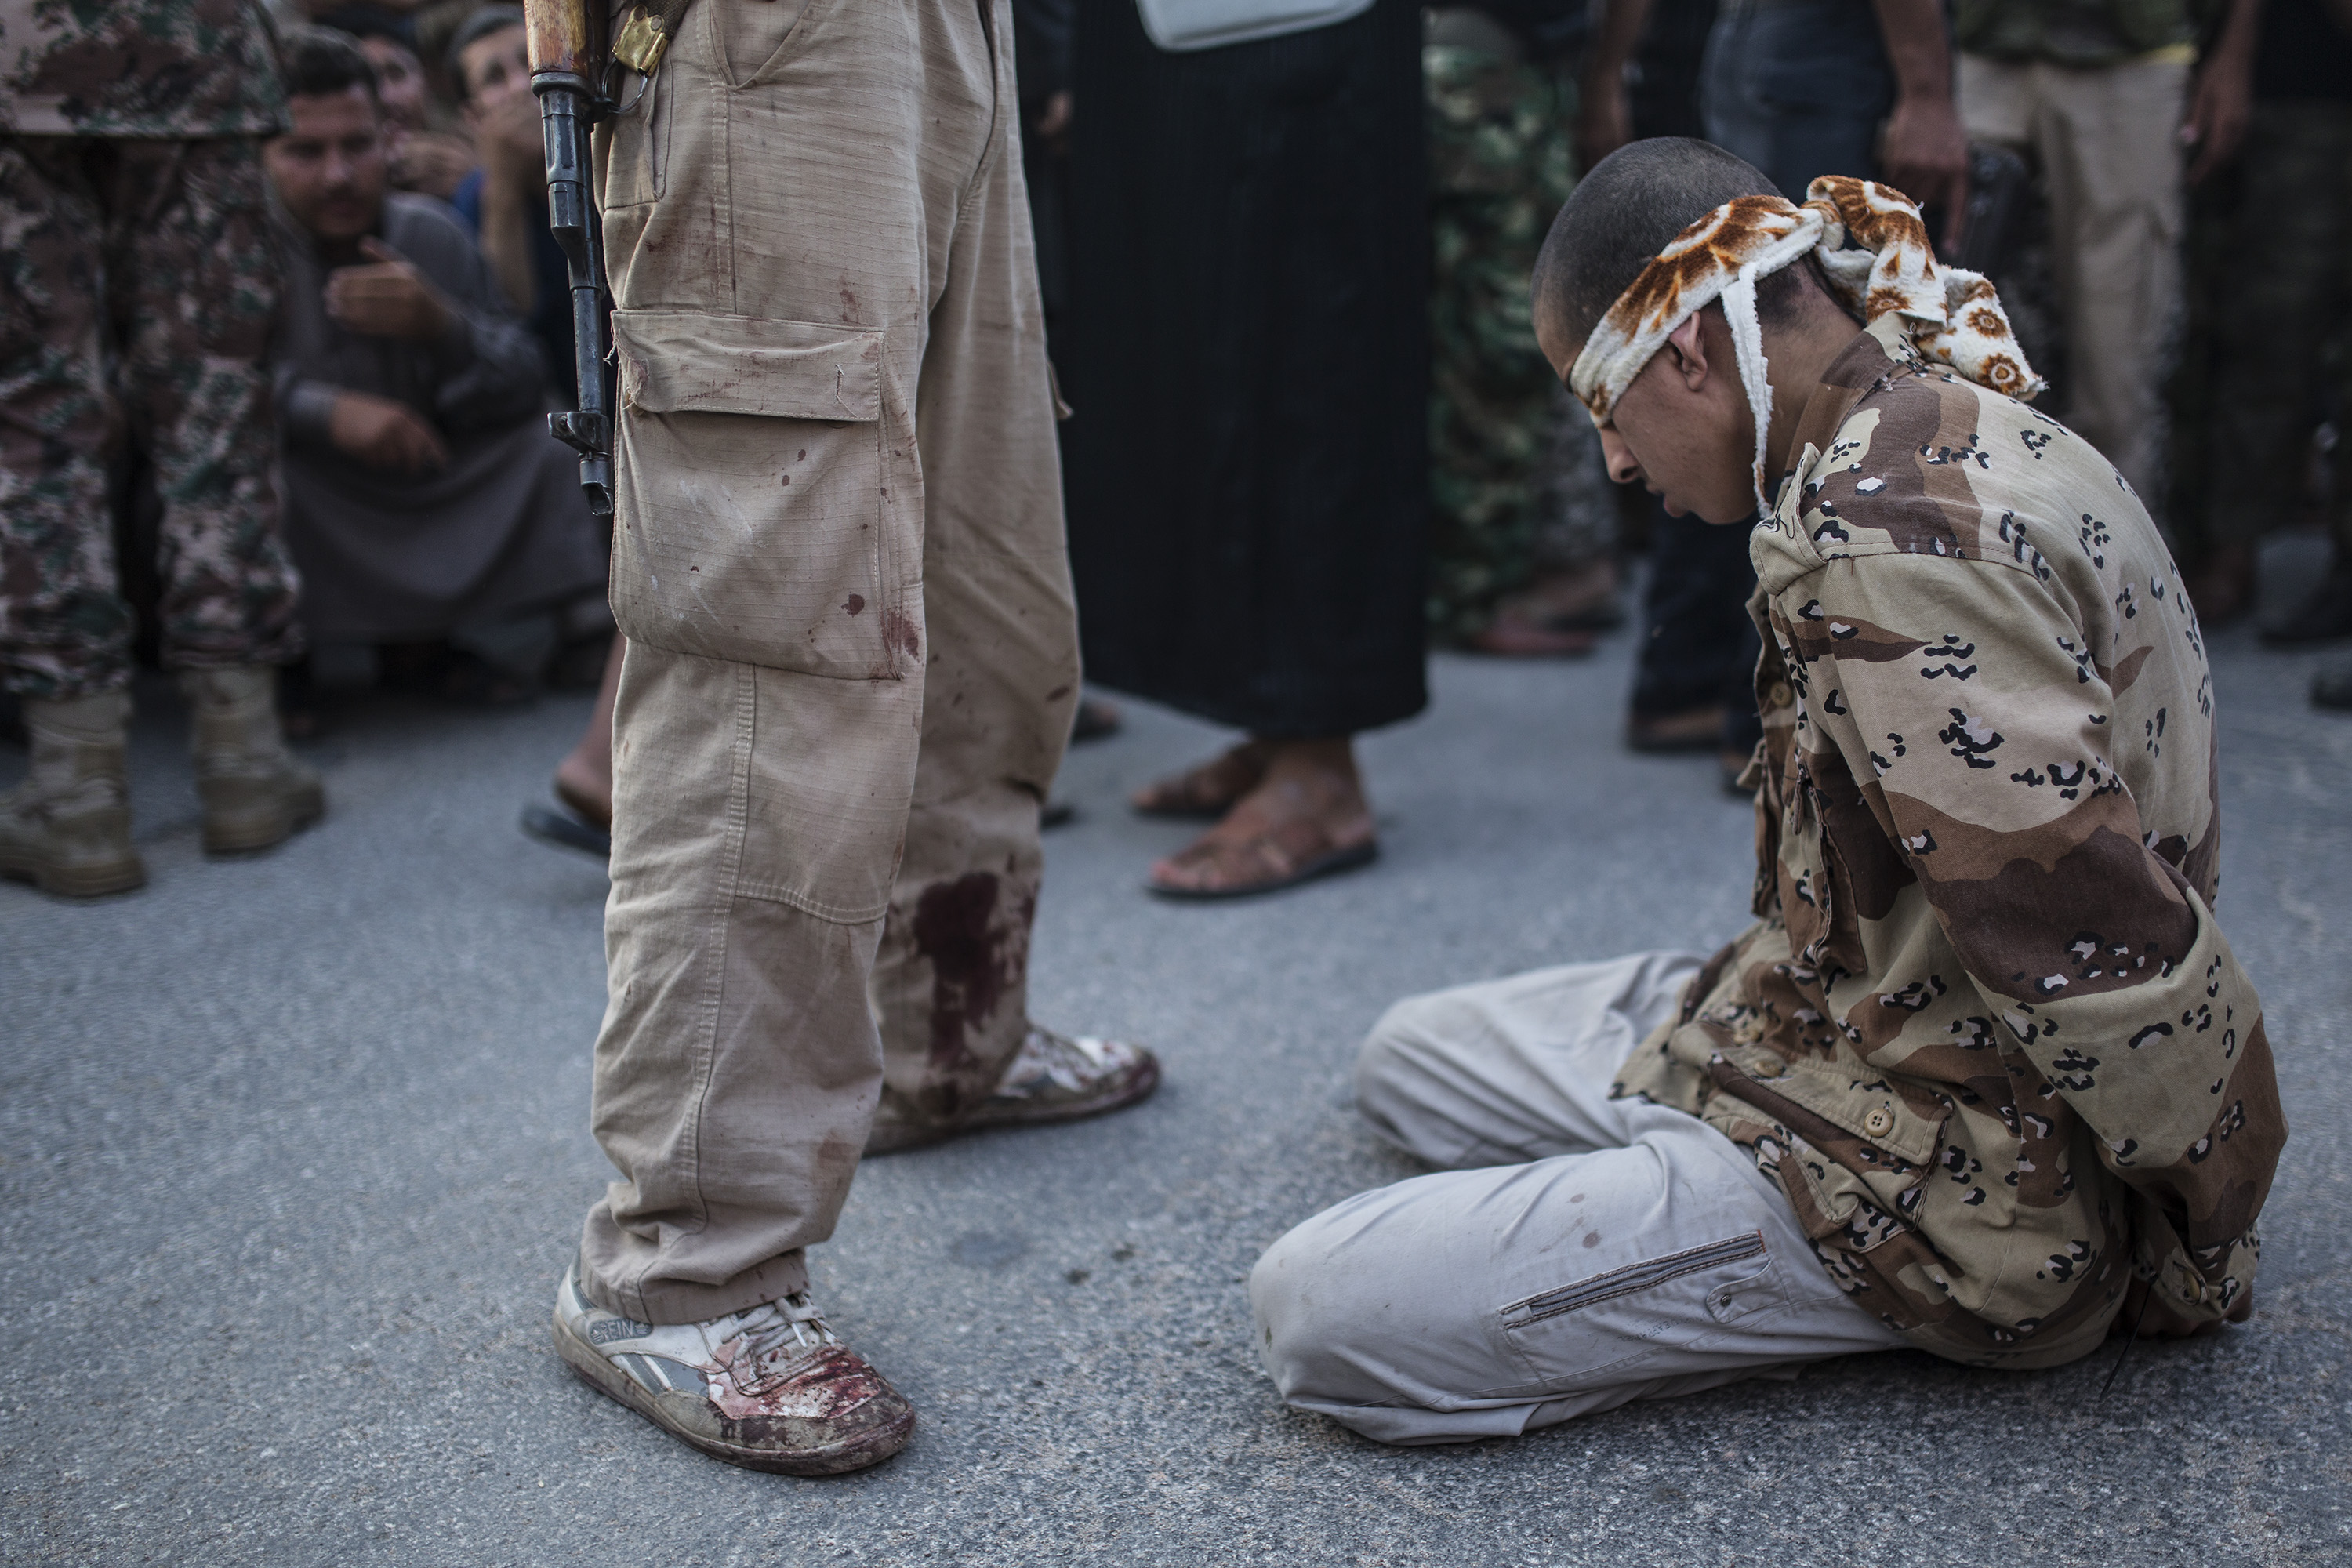 Syrian young man kneeling blindfolded before being executed by armed groups in Aleppo - August 13, 2013 (time)